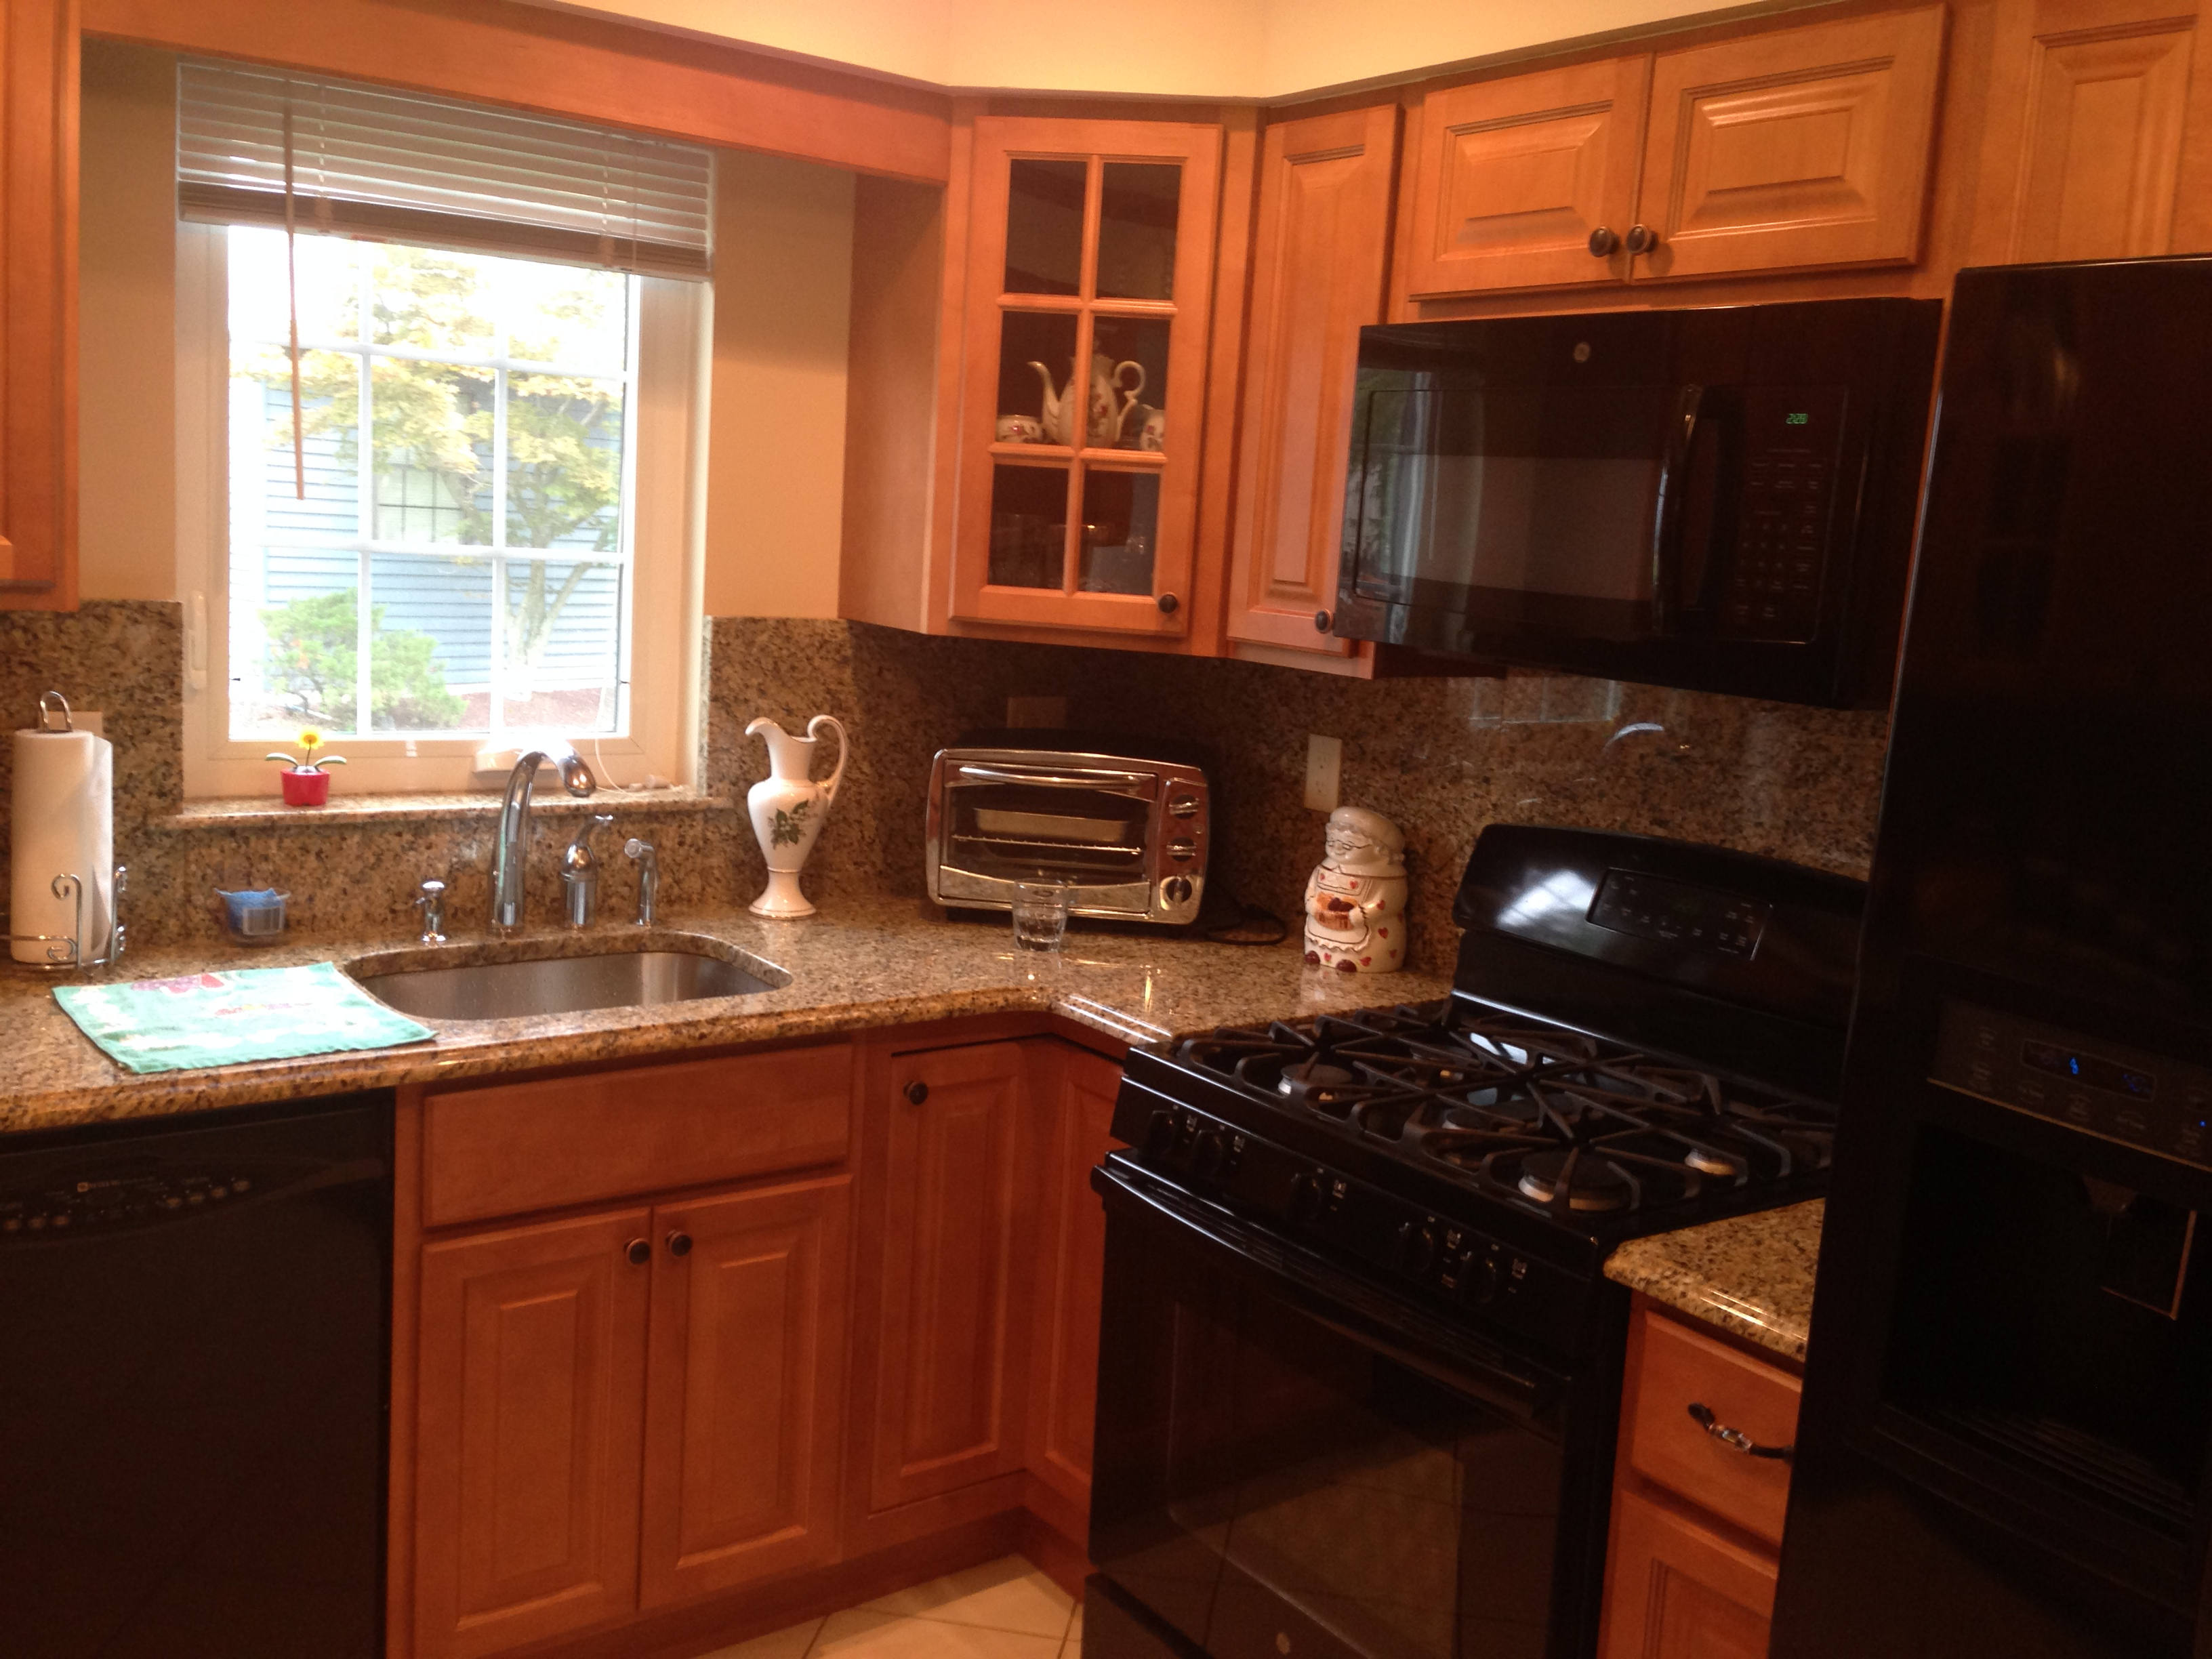 Kitchens Ace Home Improvements Of Manalapan Nj